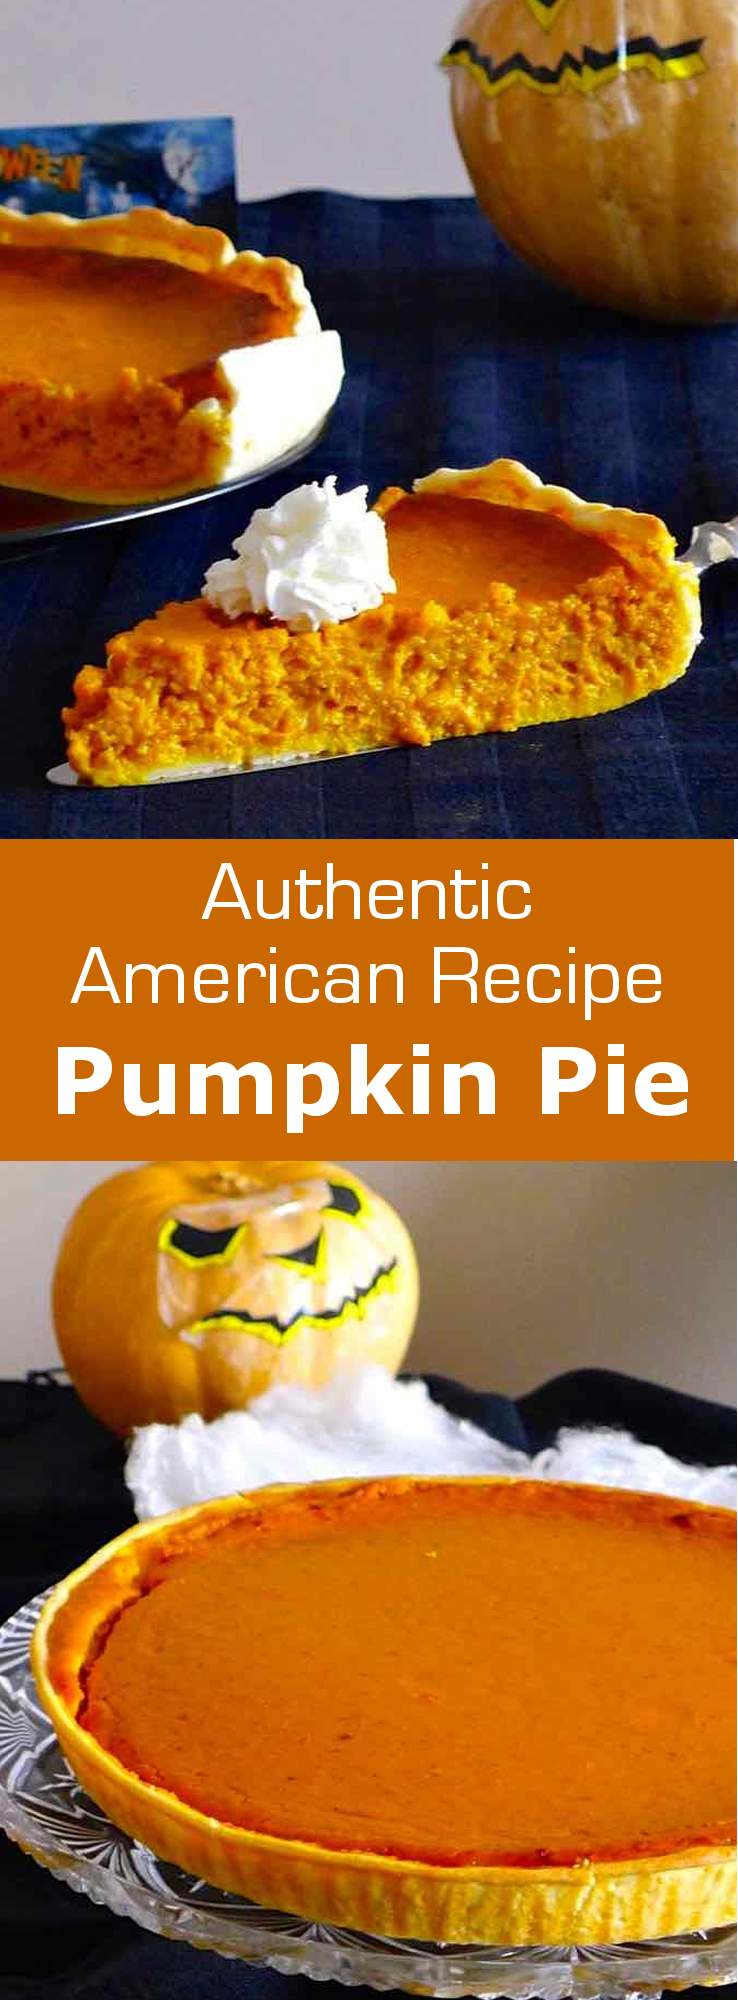 Pumpkin pie is a North American specialty that is traditionally eaten at Halloween and Thanksgiving. #thanksgiving #unitedstates #usa #196flavors